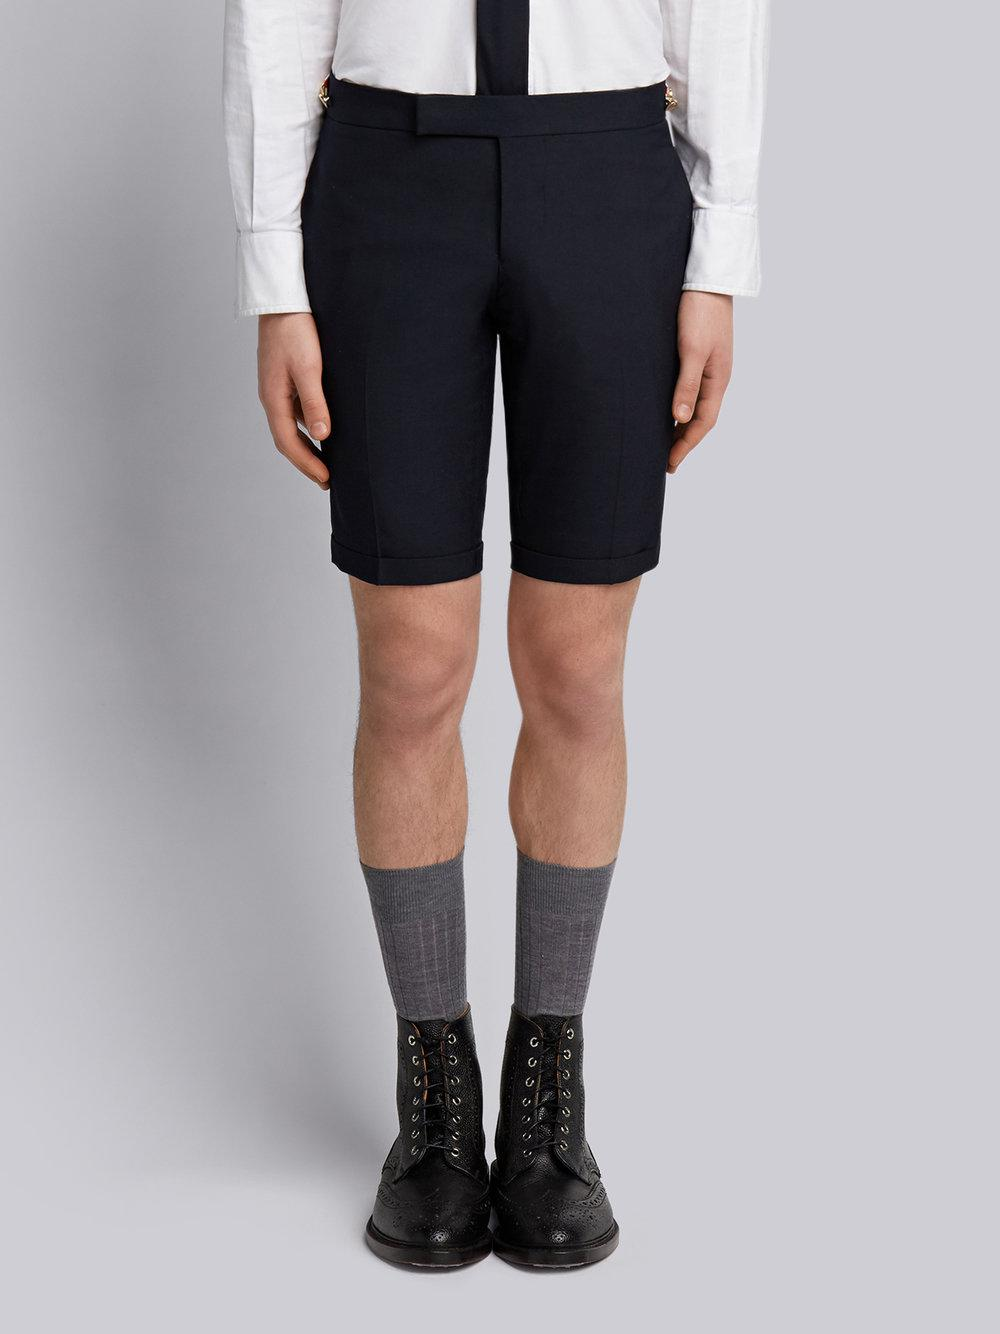 Low Rise Skinny Short With Red, White And Blue Selvedge Back Leg Placement In School Uniform Plain Weave Thom Browne